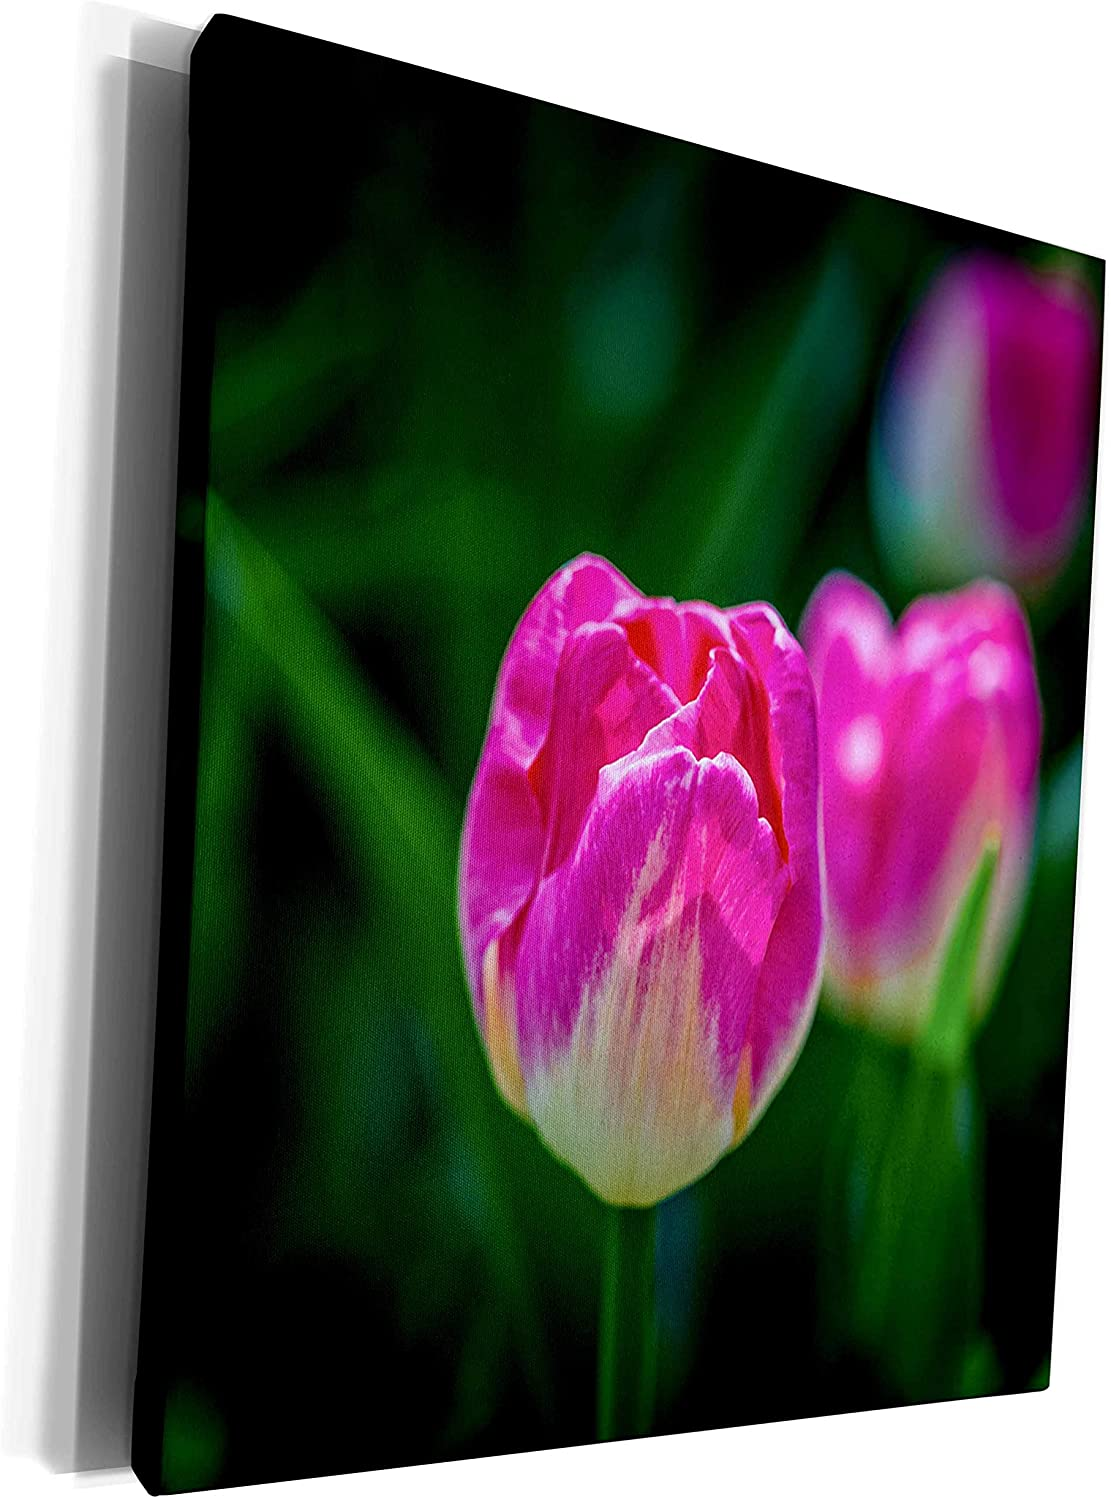 3dRose Alexis Photography - Flowers Tulip - Pink and beige tulip flower, dark green background - Museum Grade Canvas Wrap (cw_270715_1)